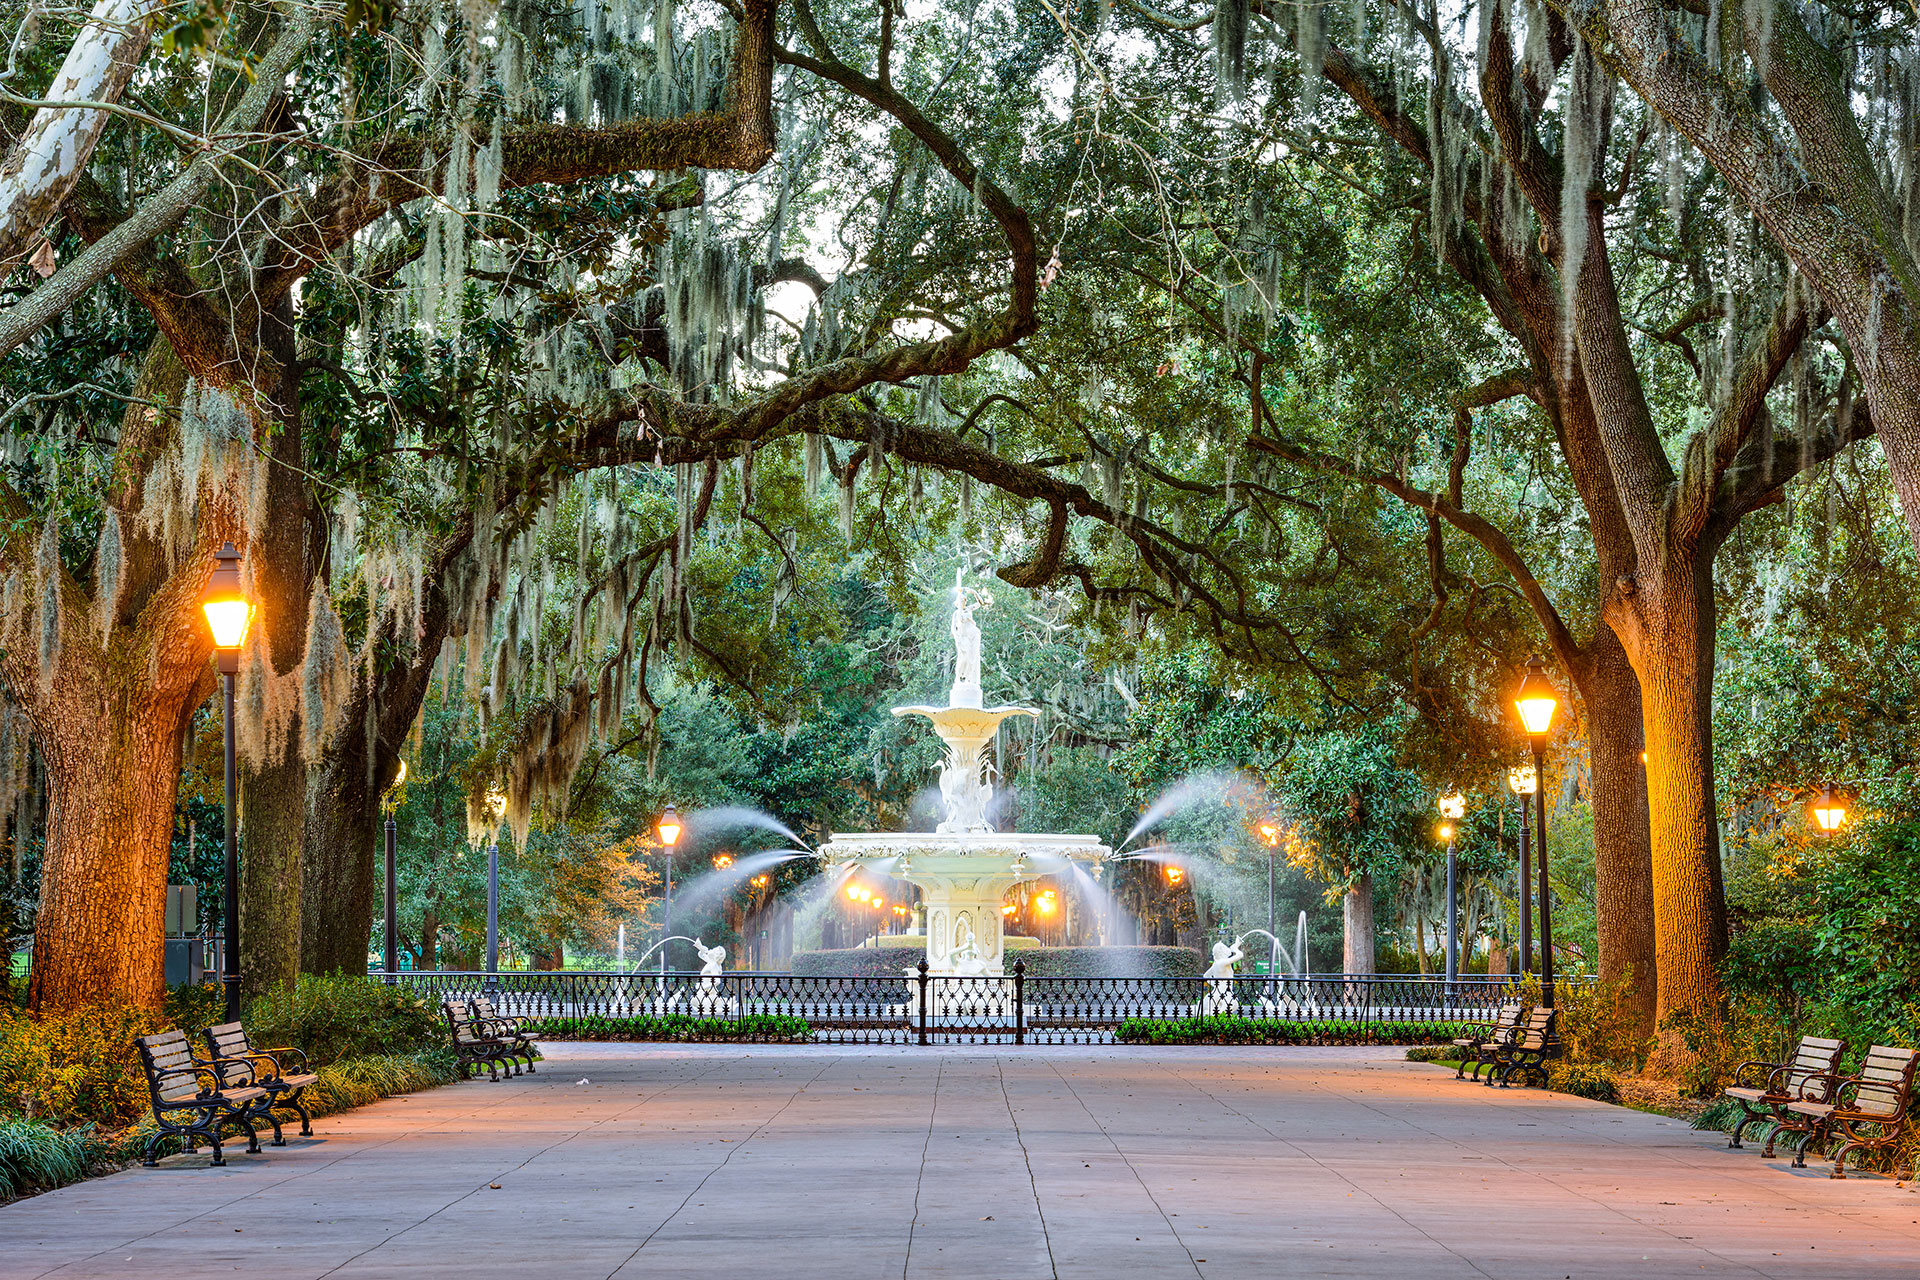 Savannah, Georgia; Courtesy of Sean Pavone/Shutterstock.com